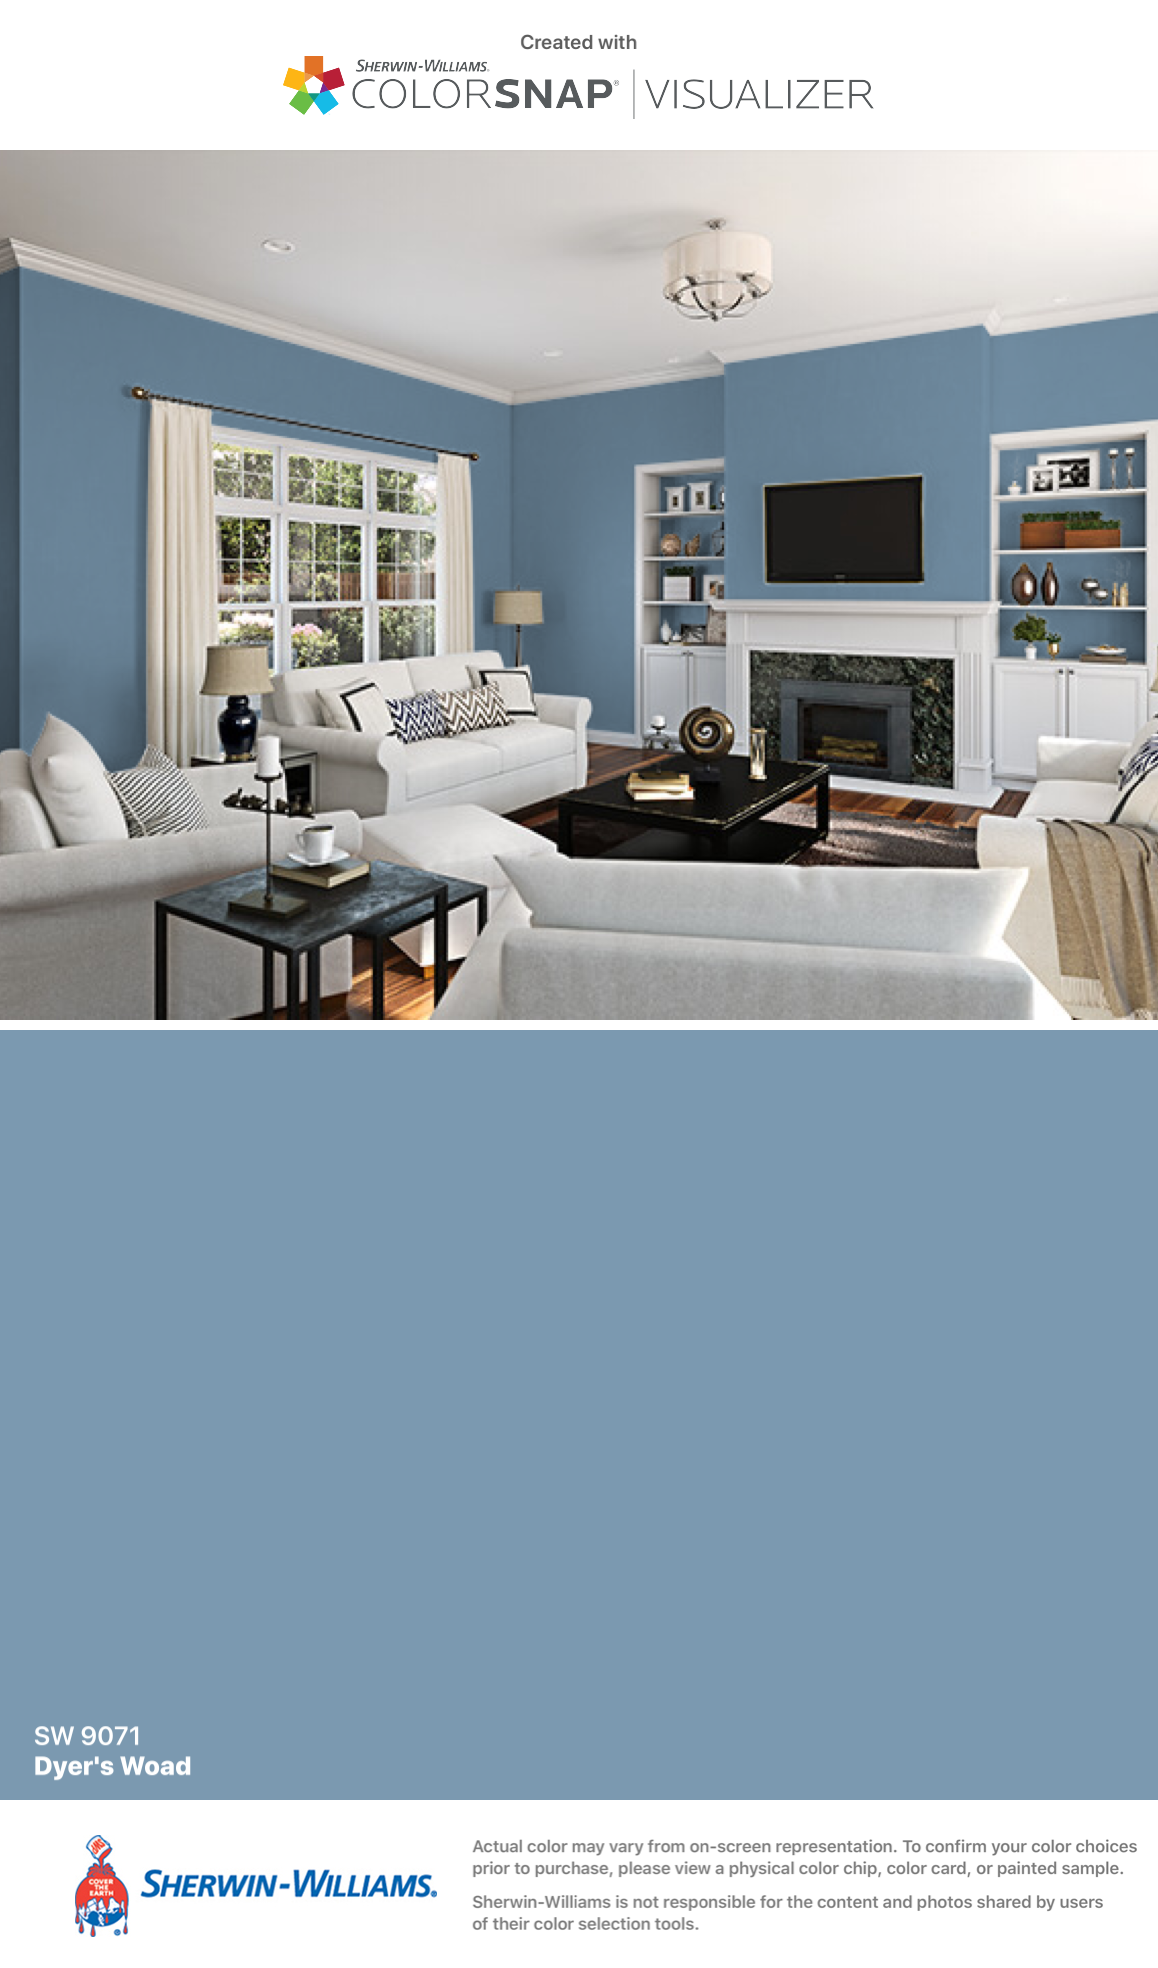 I Found This Color With Colorsnap Visualizer For Iphone By Sherwin Williams Dyer S Woad Paint Colors For Home Sherwin Williams Paint Colors Room Paint Colors